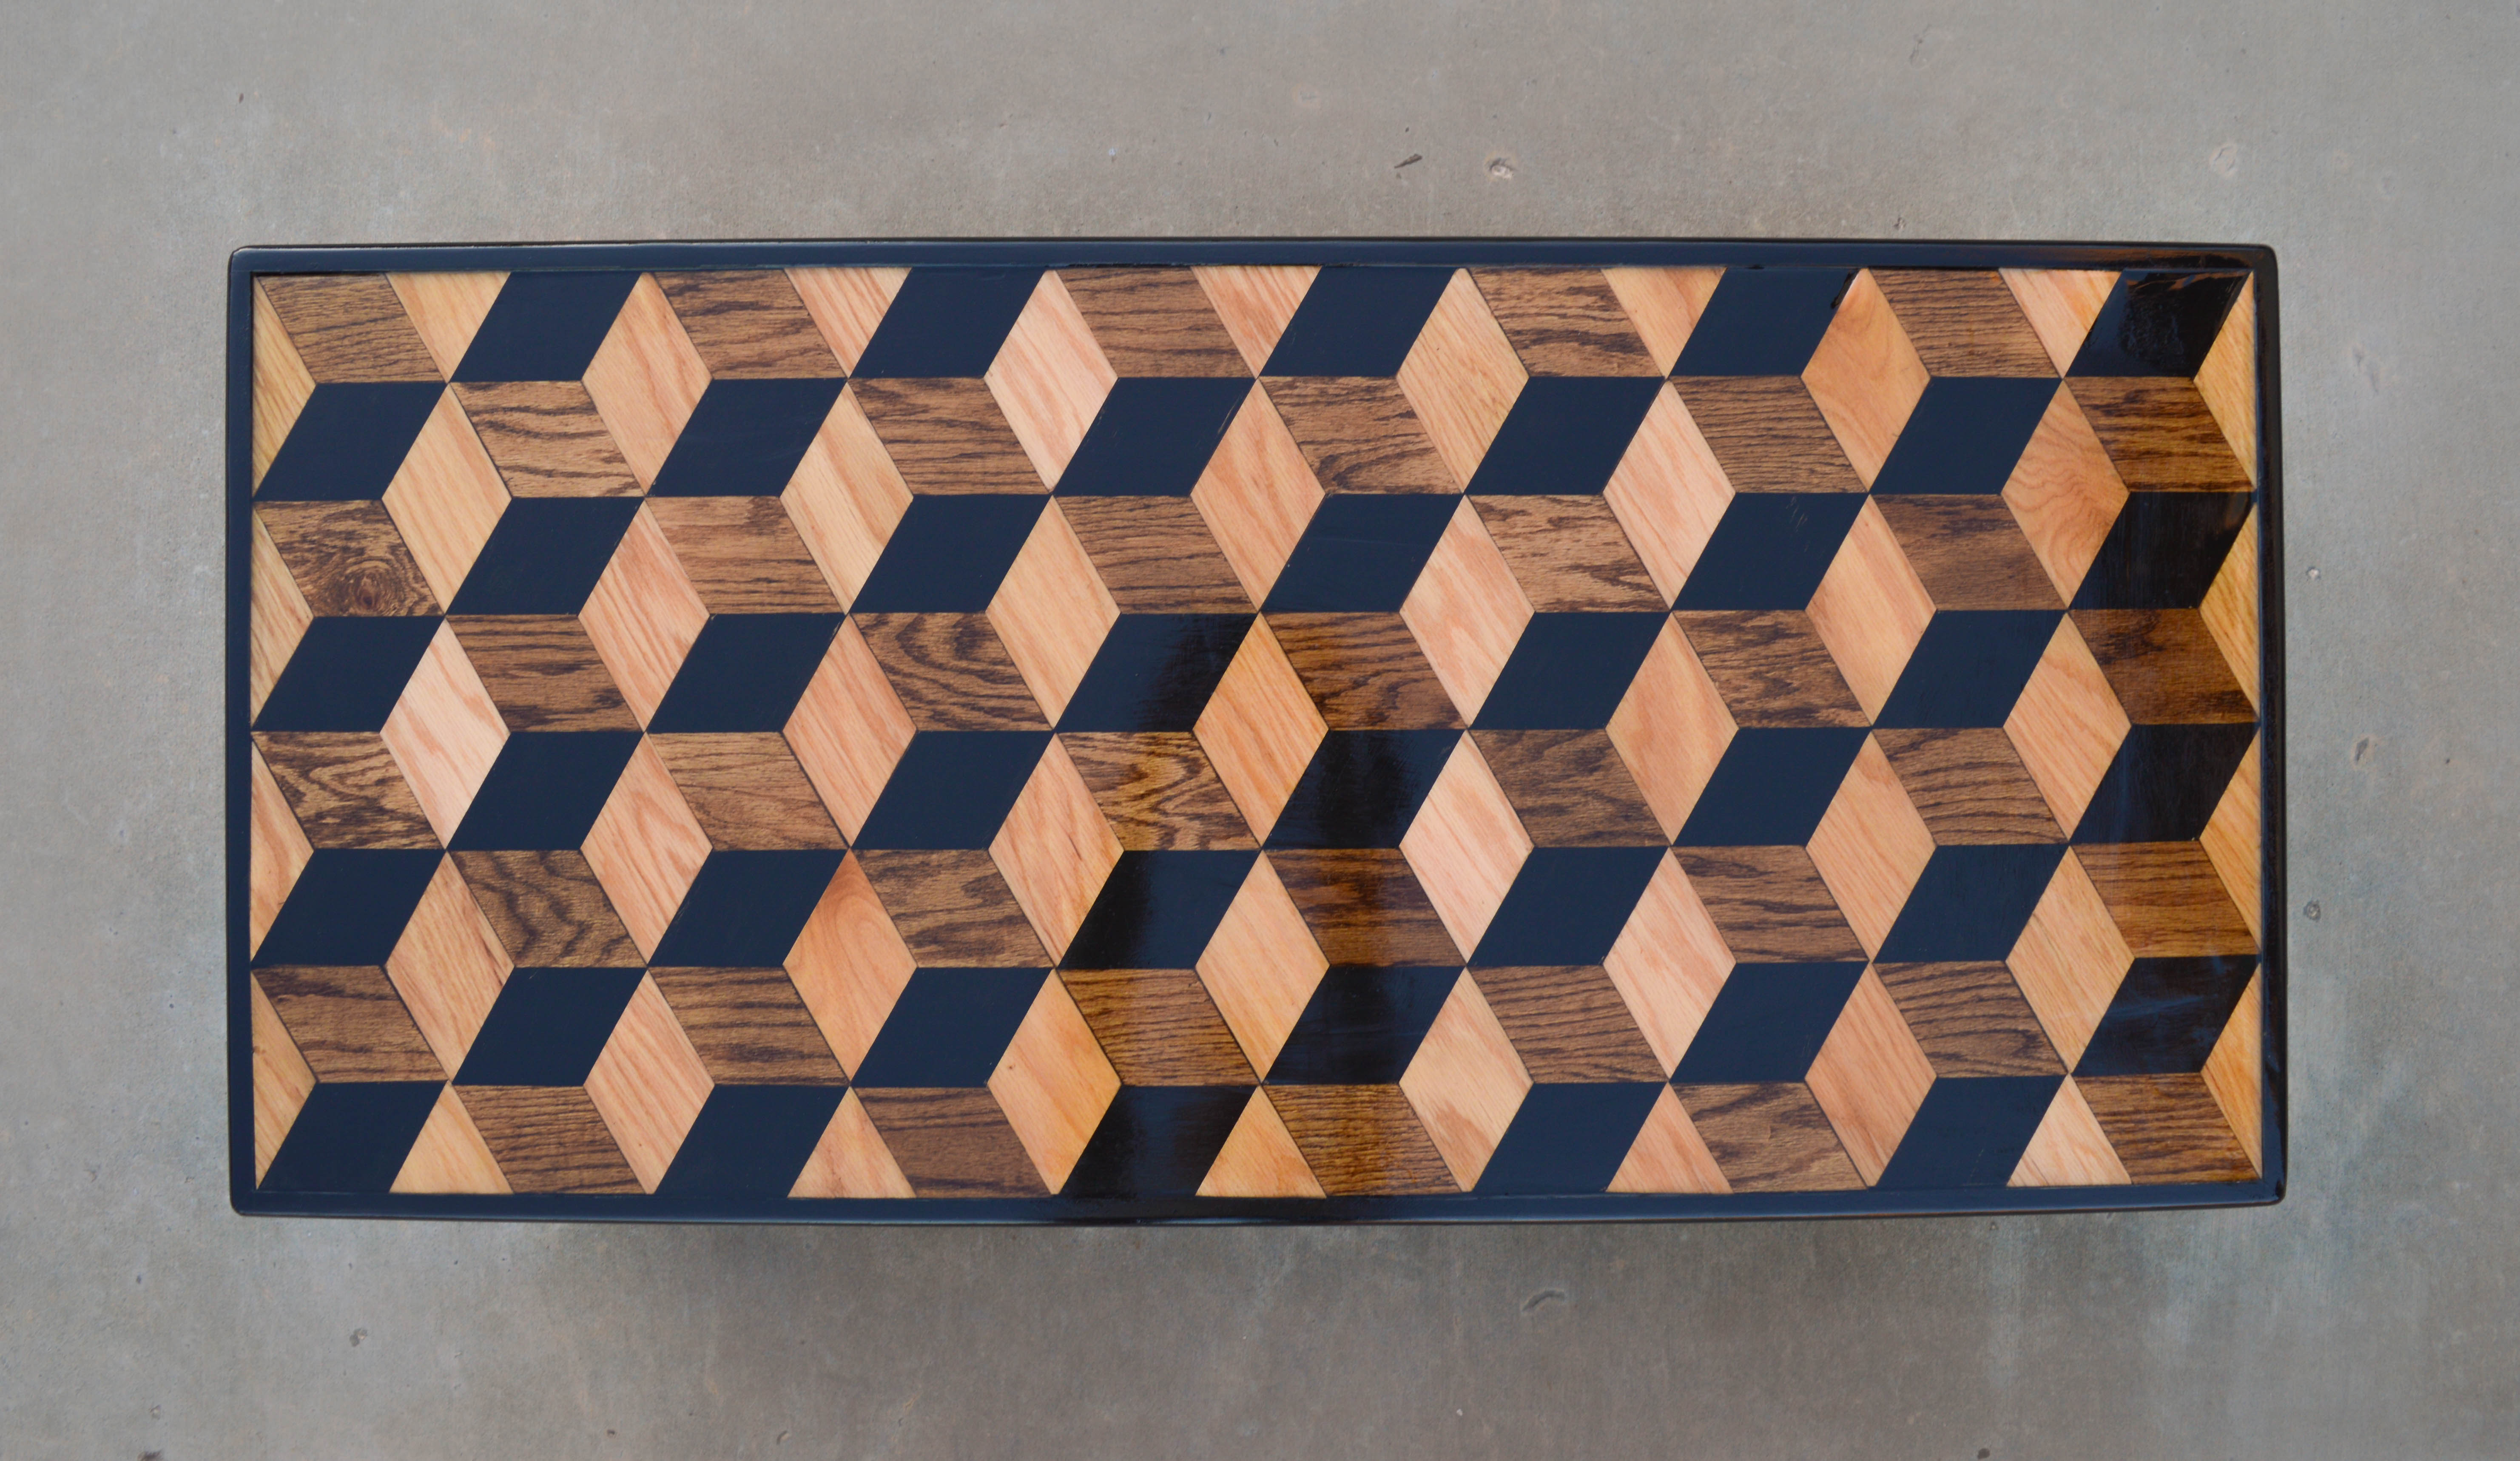 Escher coffee table john lewis anderson escher this geometric design gives the top a 3 dimensional look its sturdy construction means it will last wonderfully for years to come dailygadgetfo Gallery